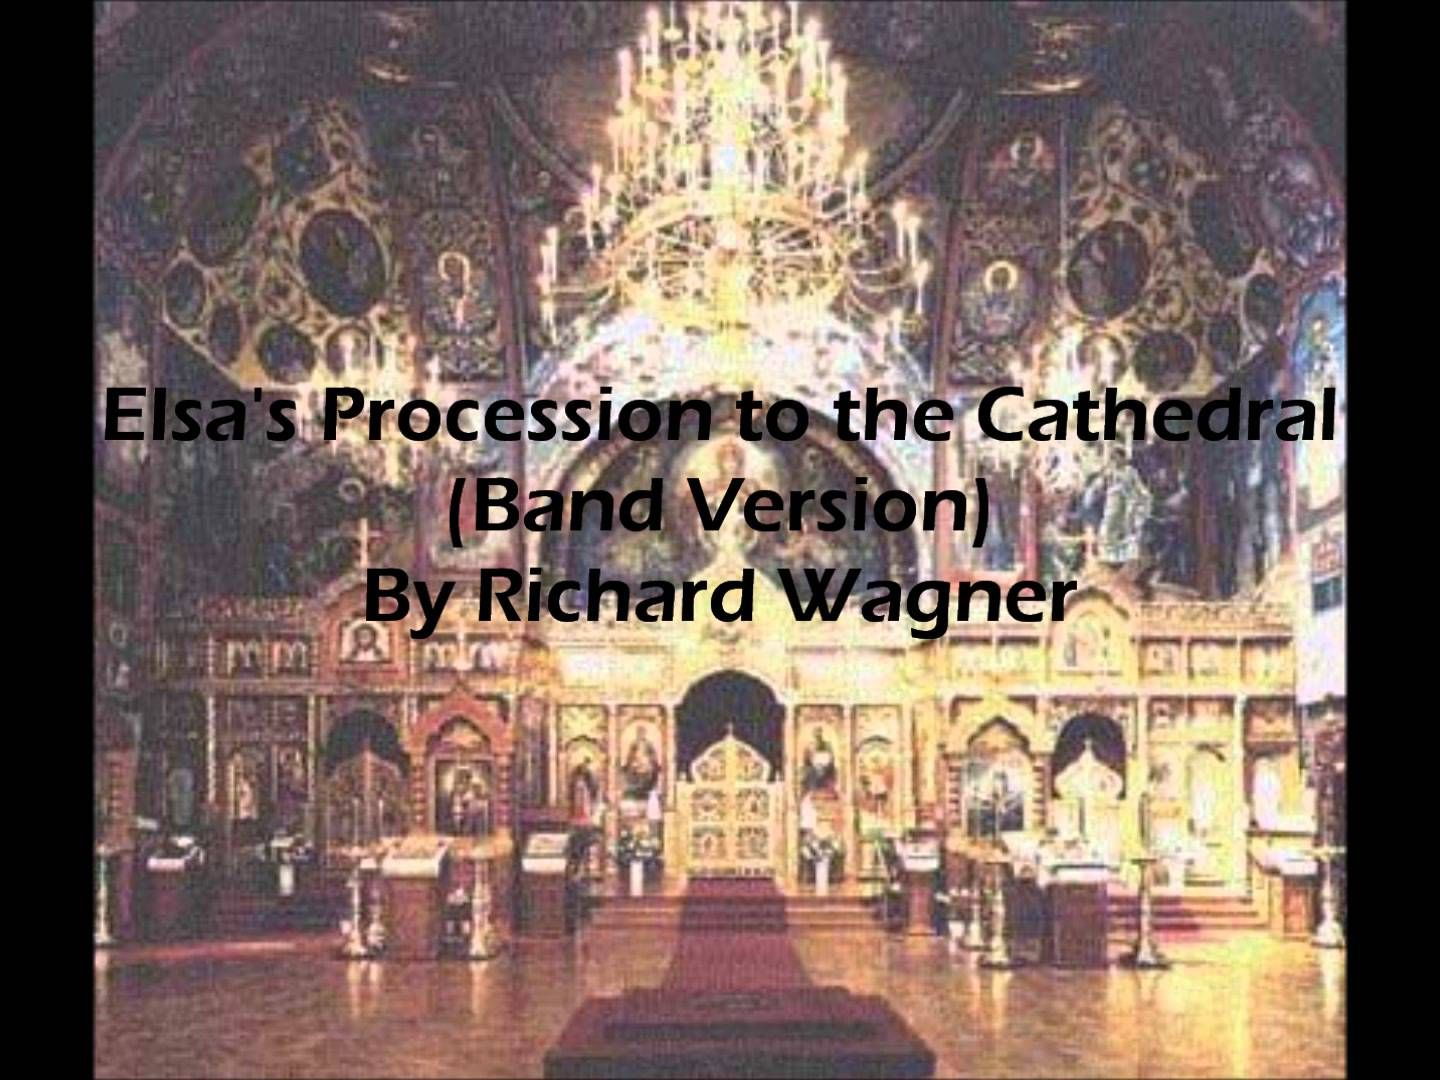 Elsa's Procession to the Cathedral (Band Version) By